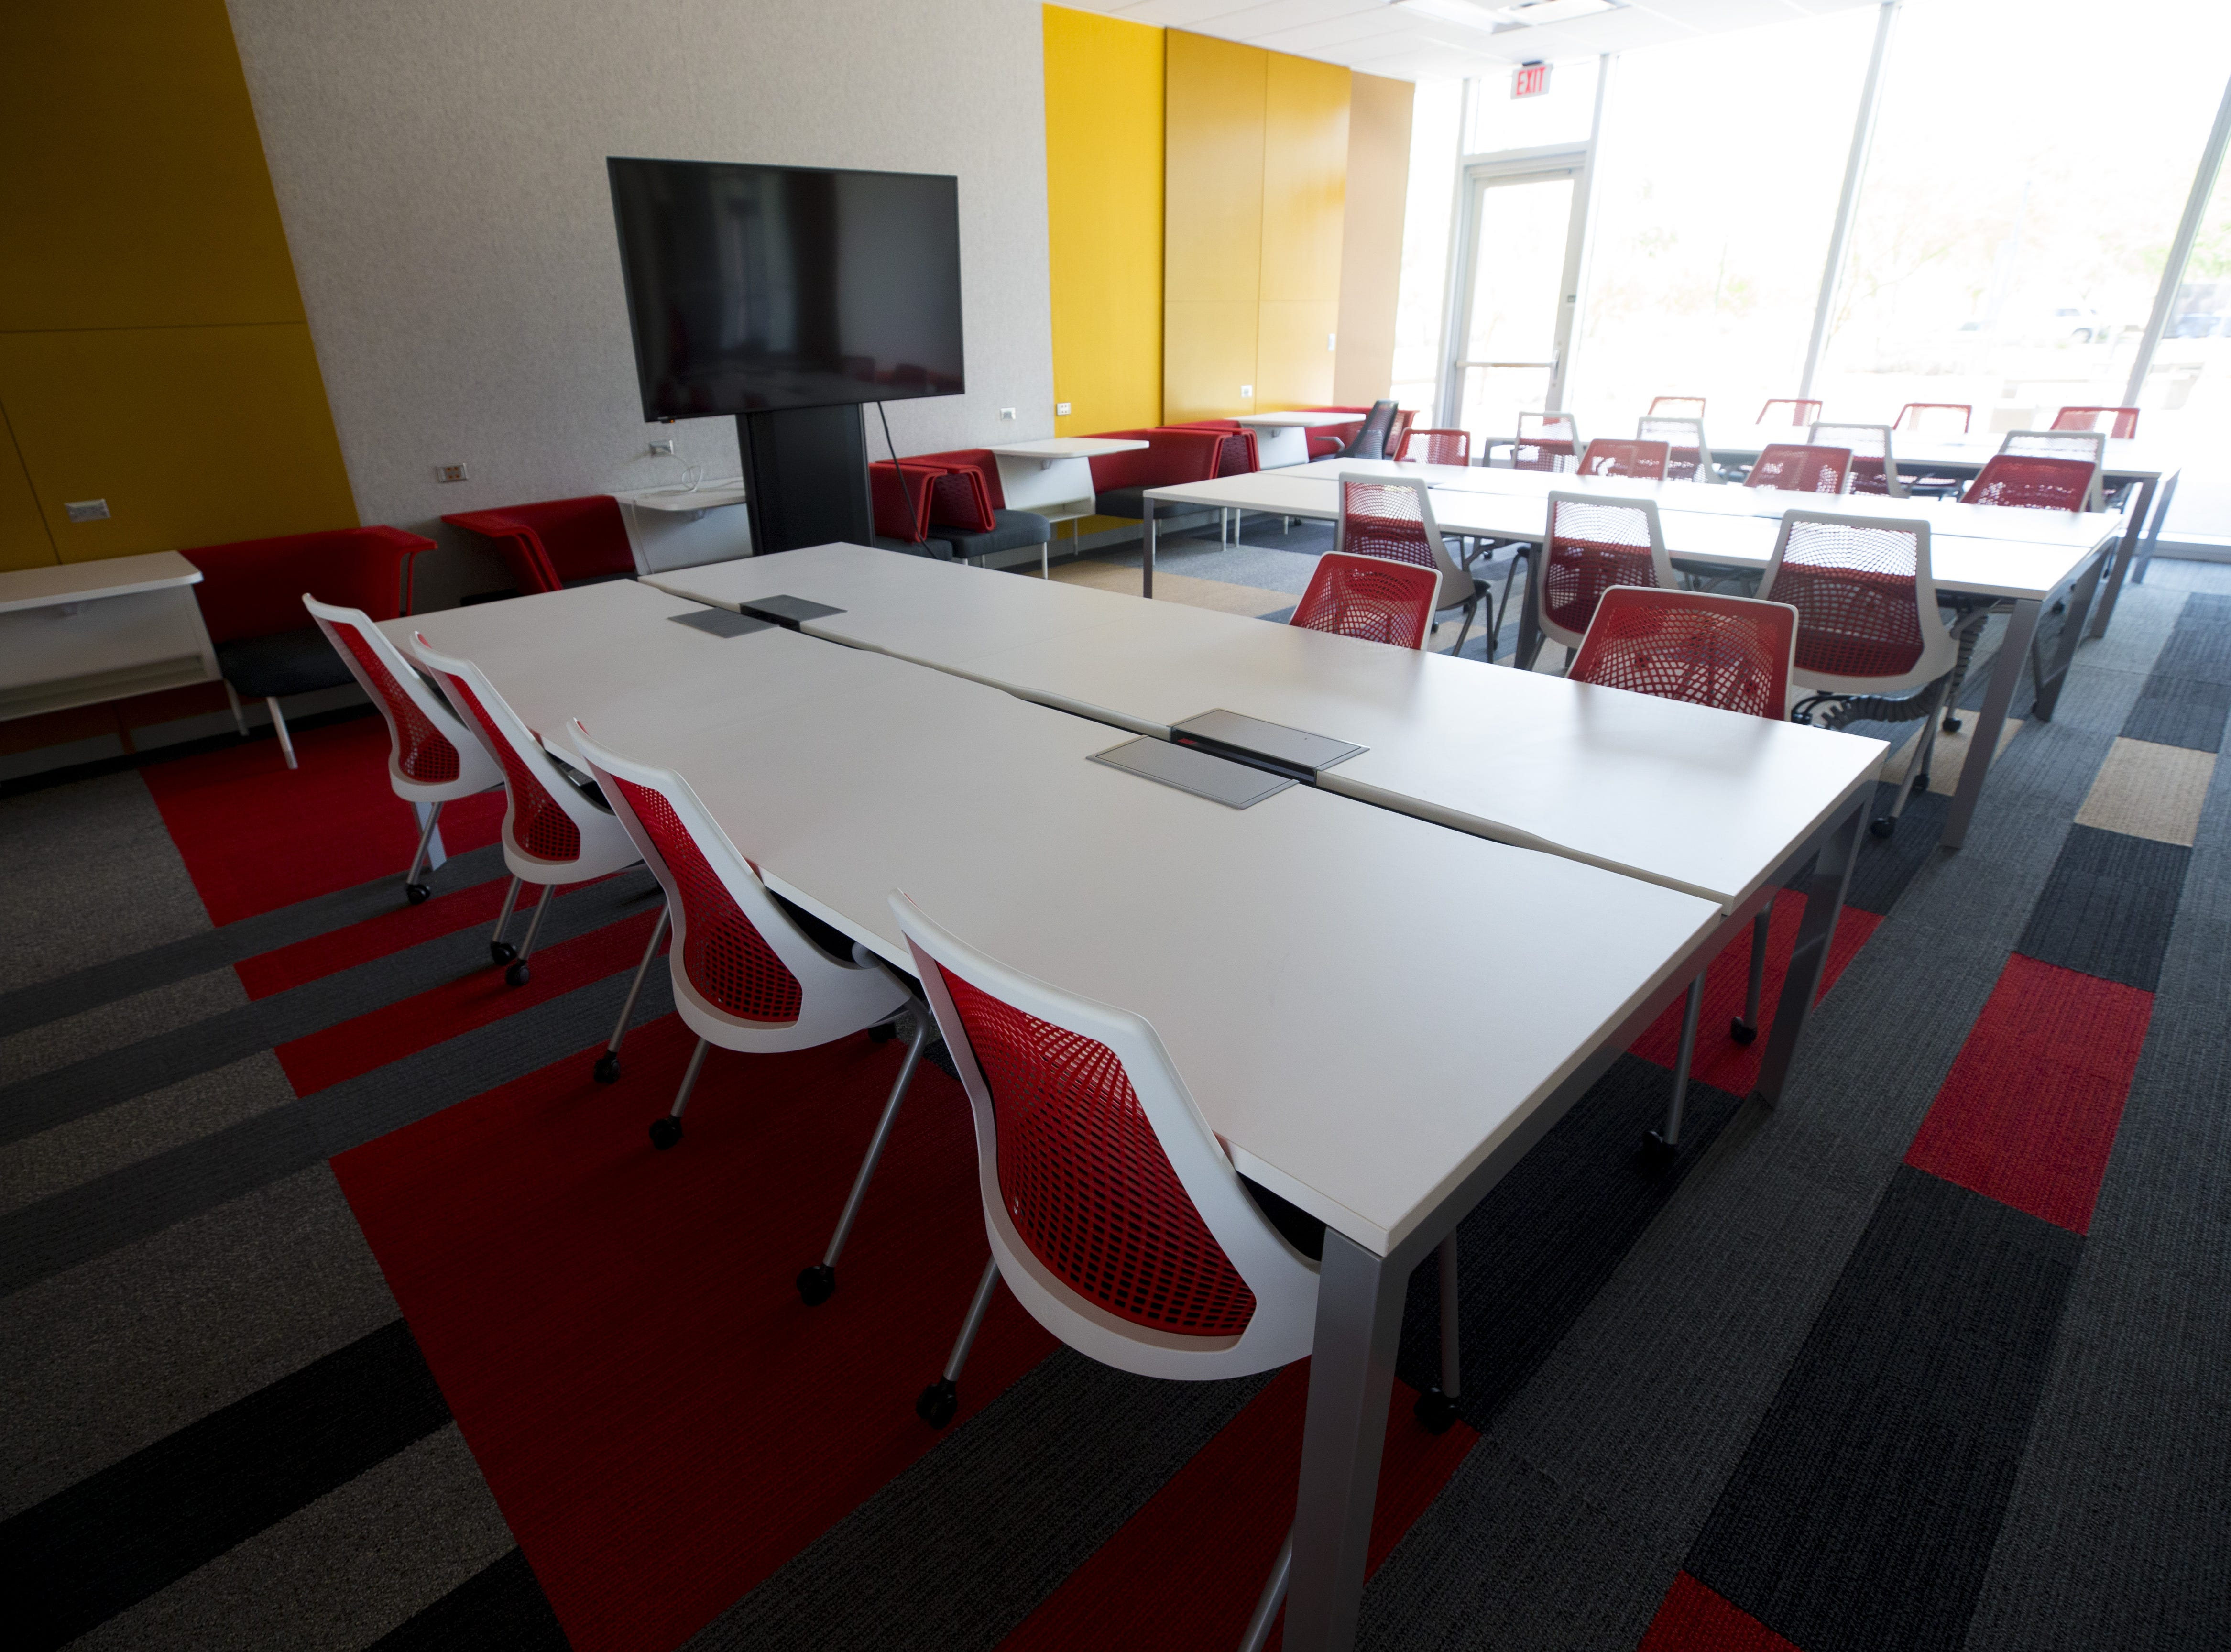 Park University is the new tenant in the Gilbert University Building.  An interior of one of the classrooms in the building.